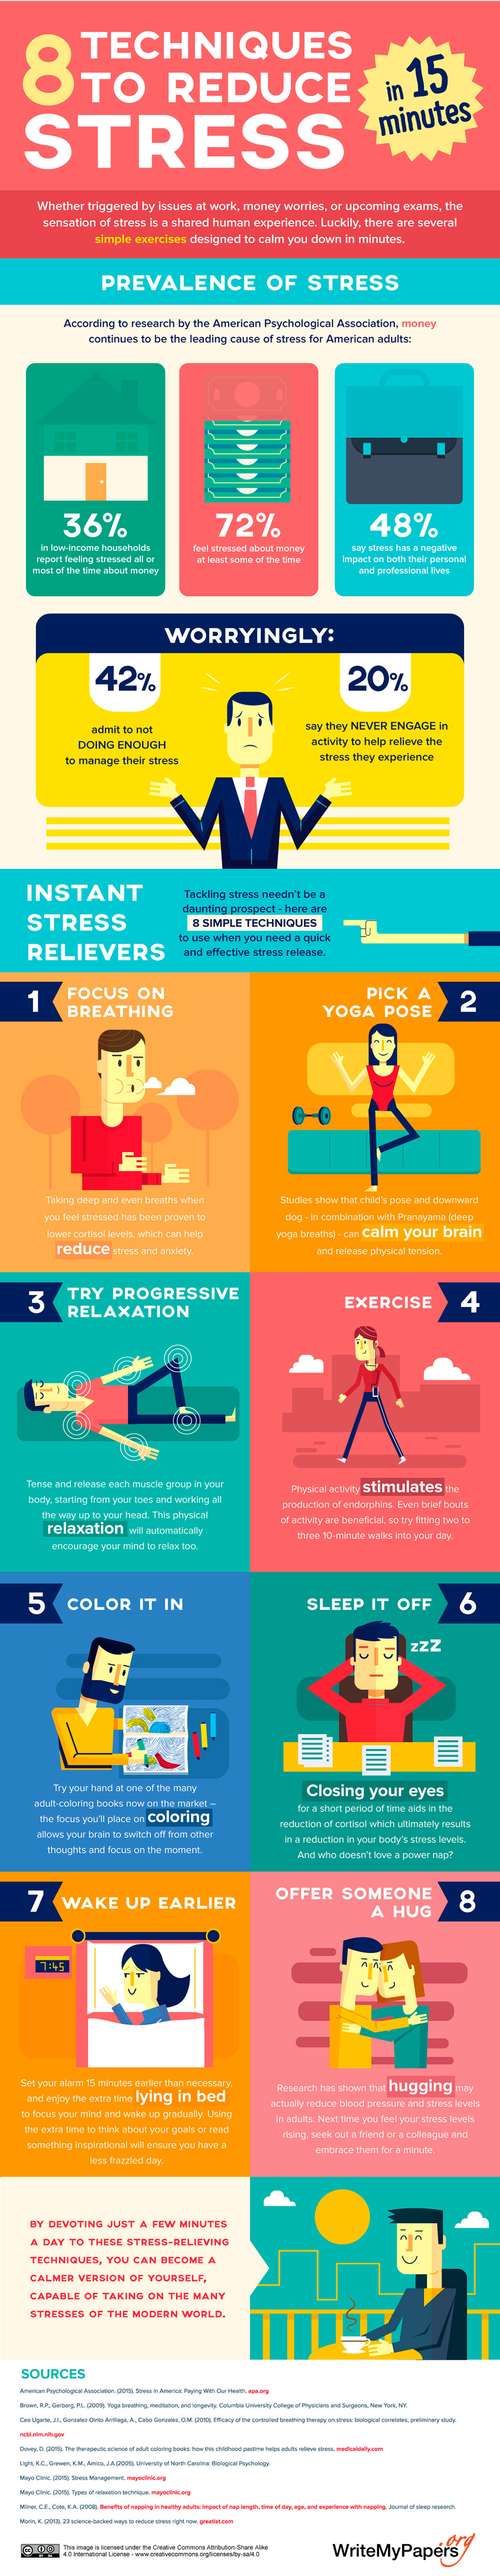 infographics on how to reduce stress  techniques to reduce stress from